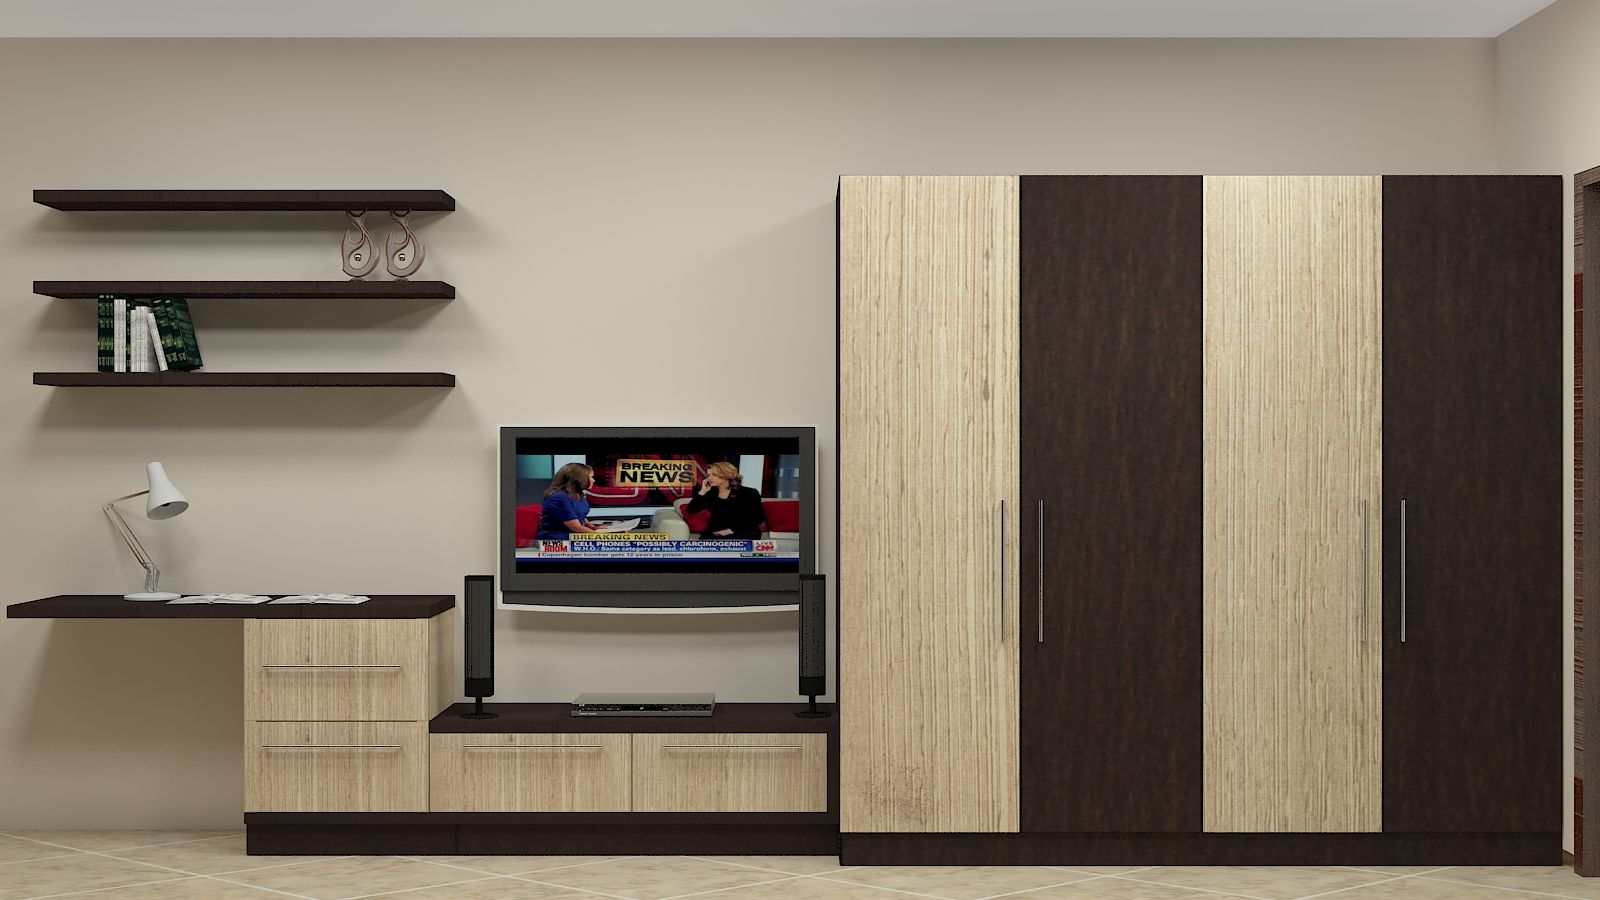 Modular wardrobe design for indian bedroom having 4 door for 4 door wardrobe interior designs